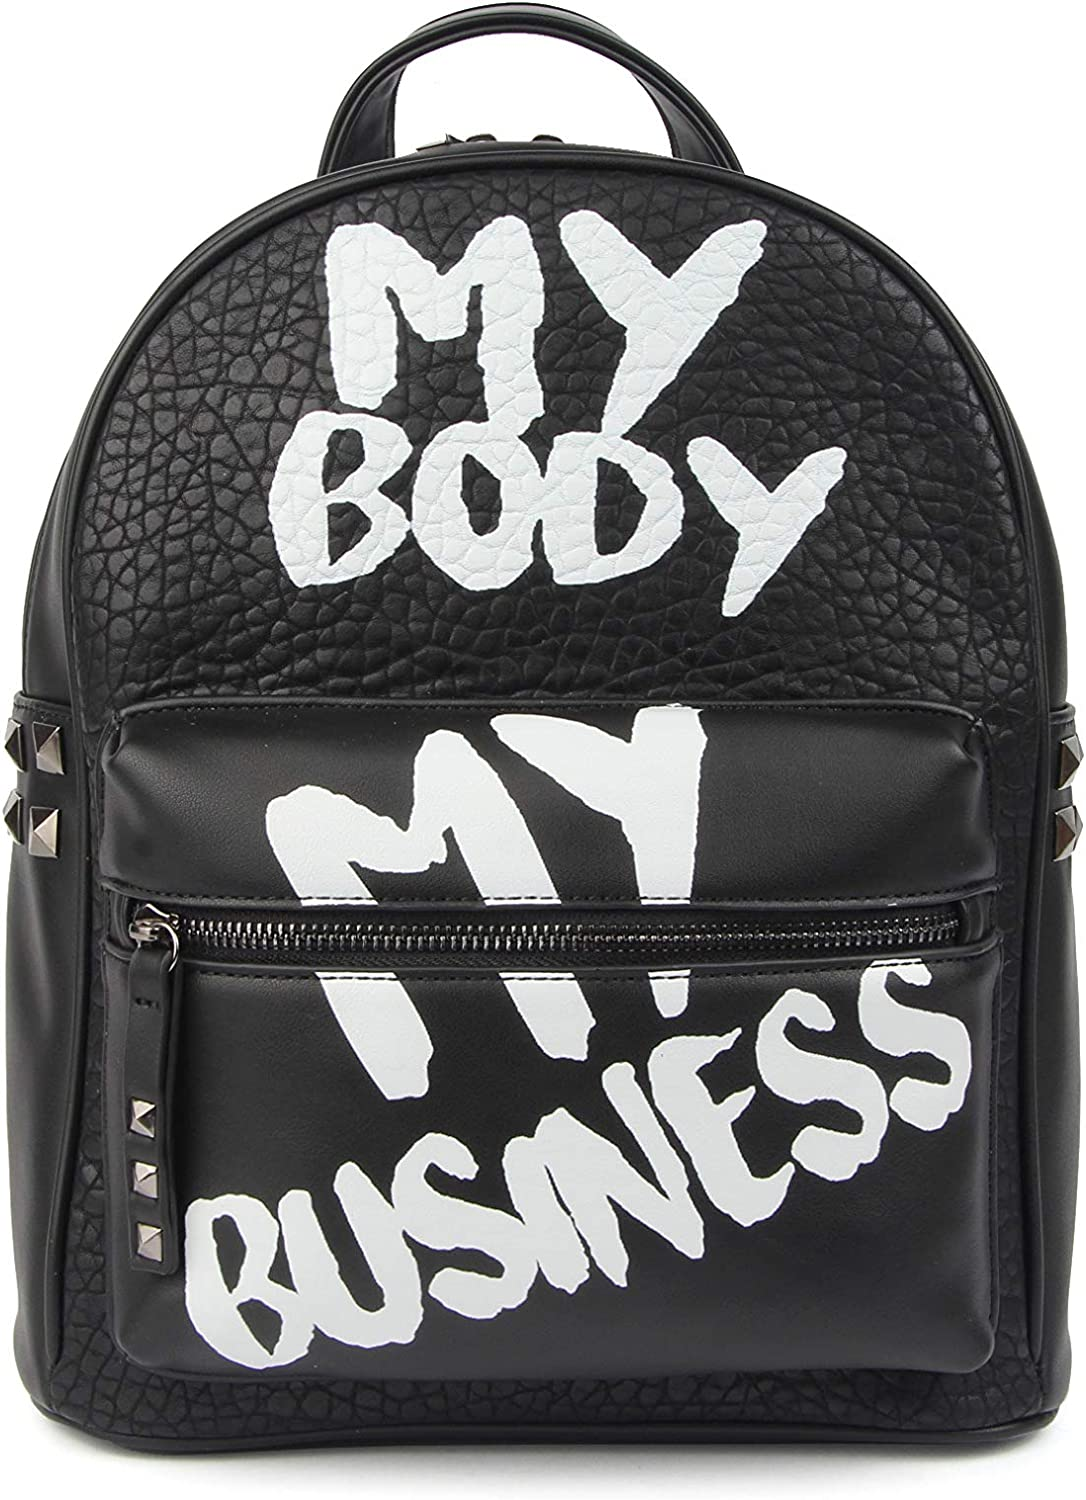 Bienali My Body My Business Backpack